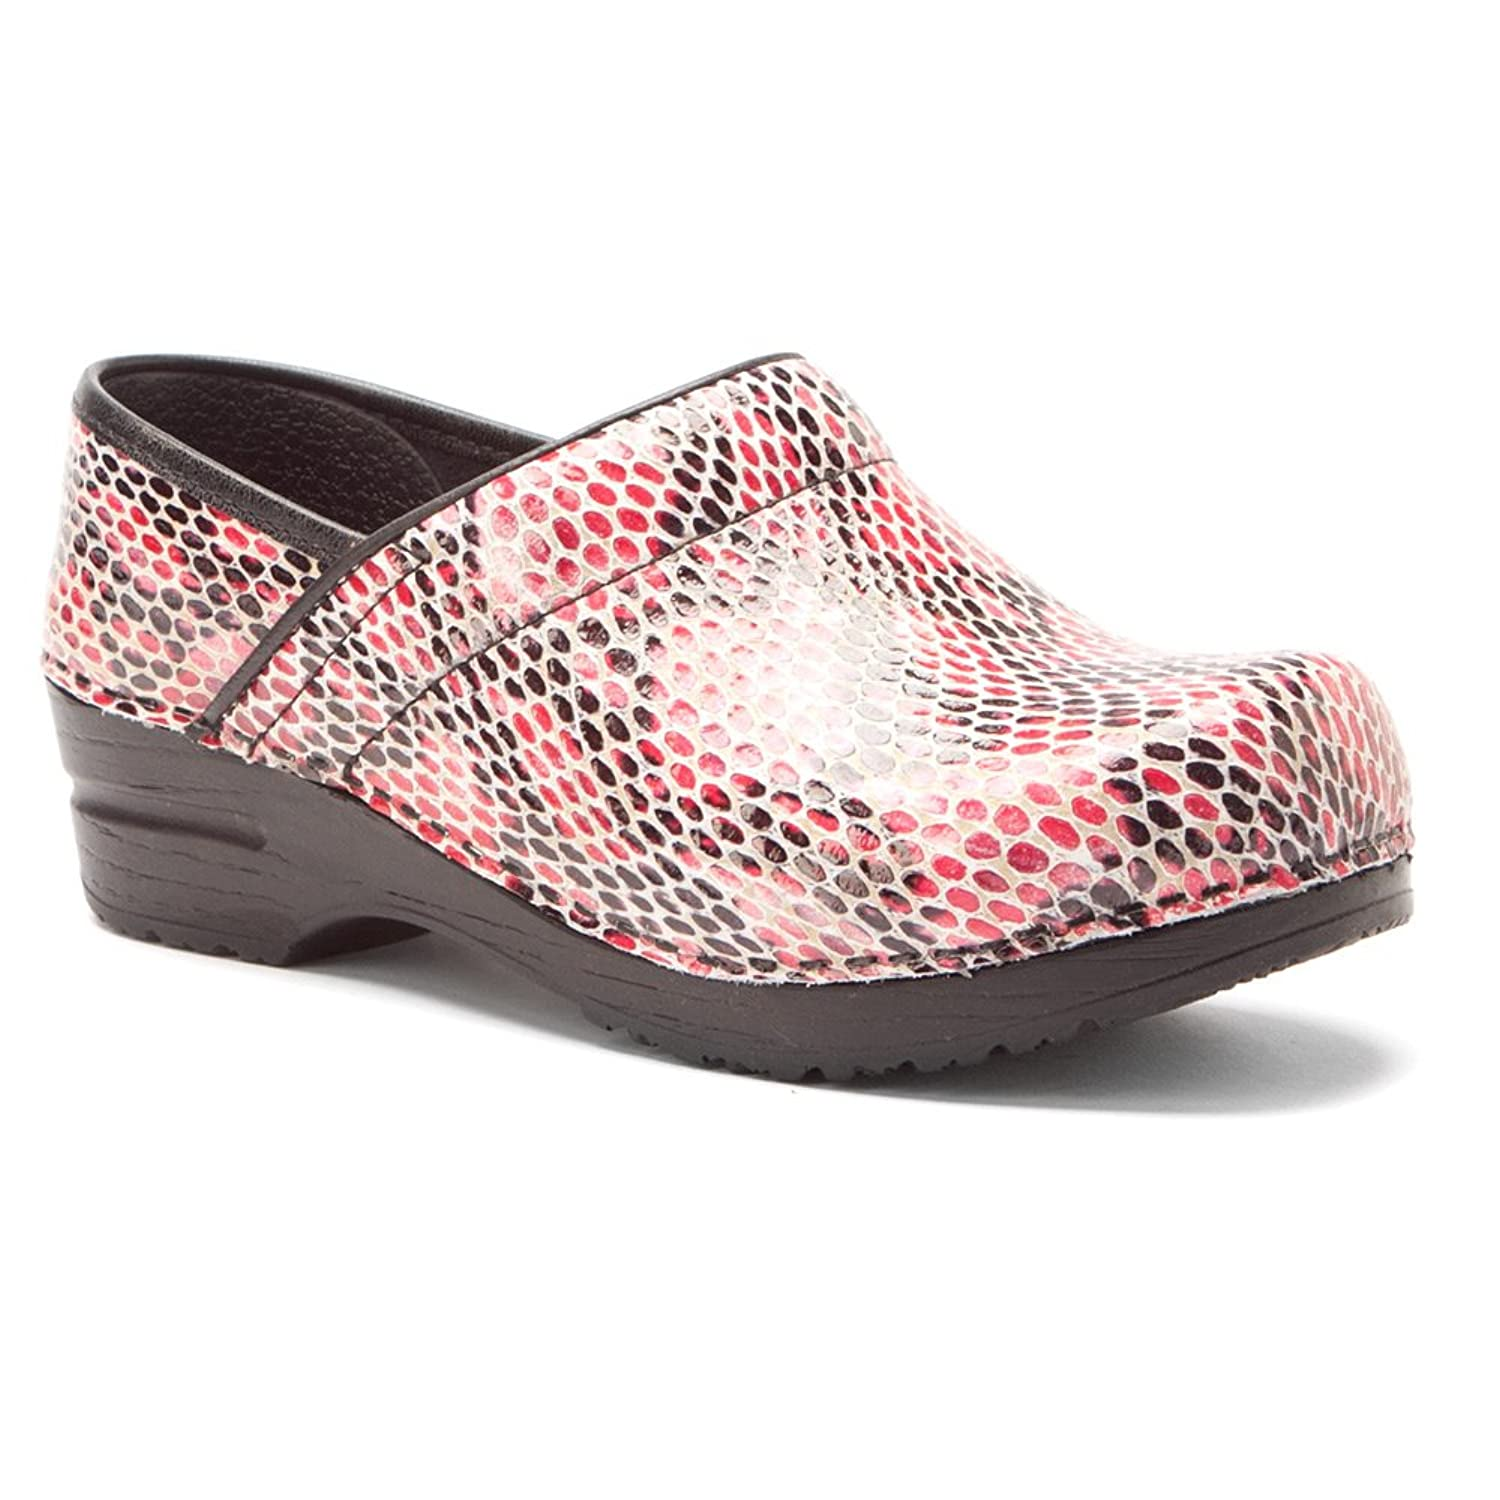 Sanita Women's Professional Adolfine Clogs